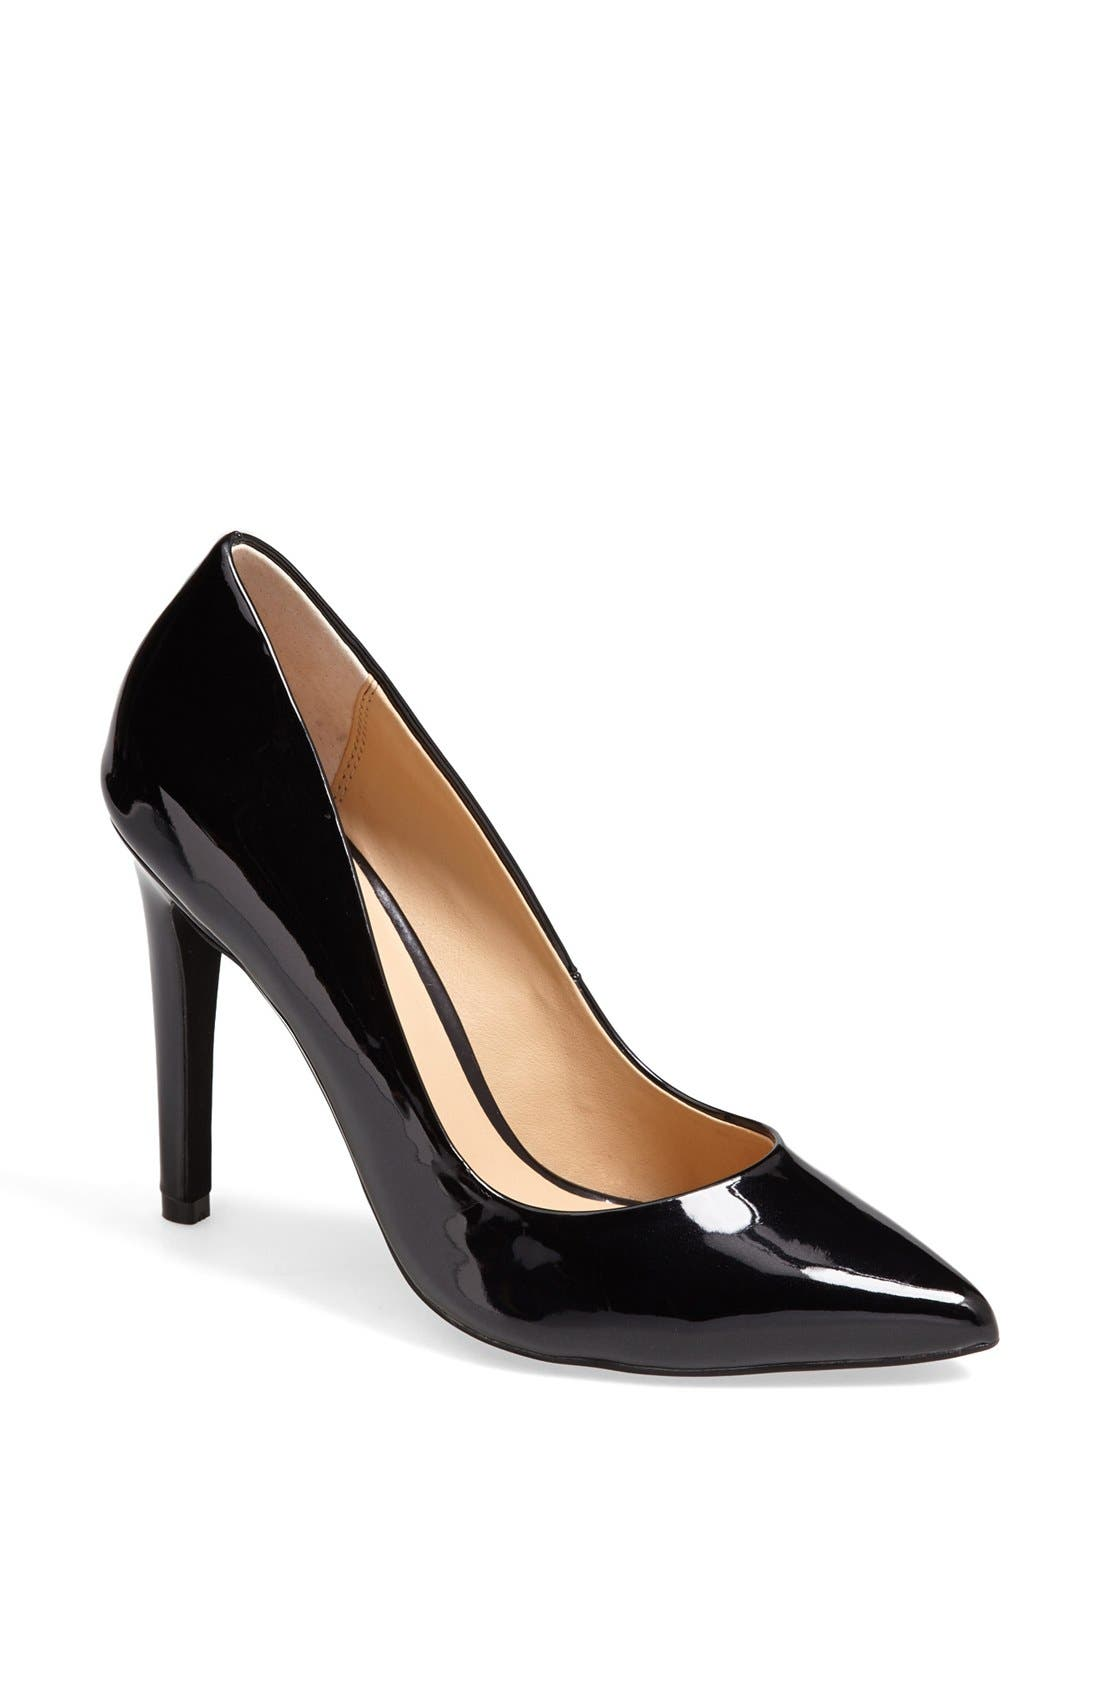 Alternate Image 1 Selected - Joe's 'Erika' Patent Leather Pointy Toe Pump